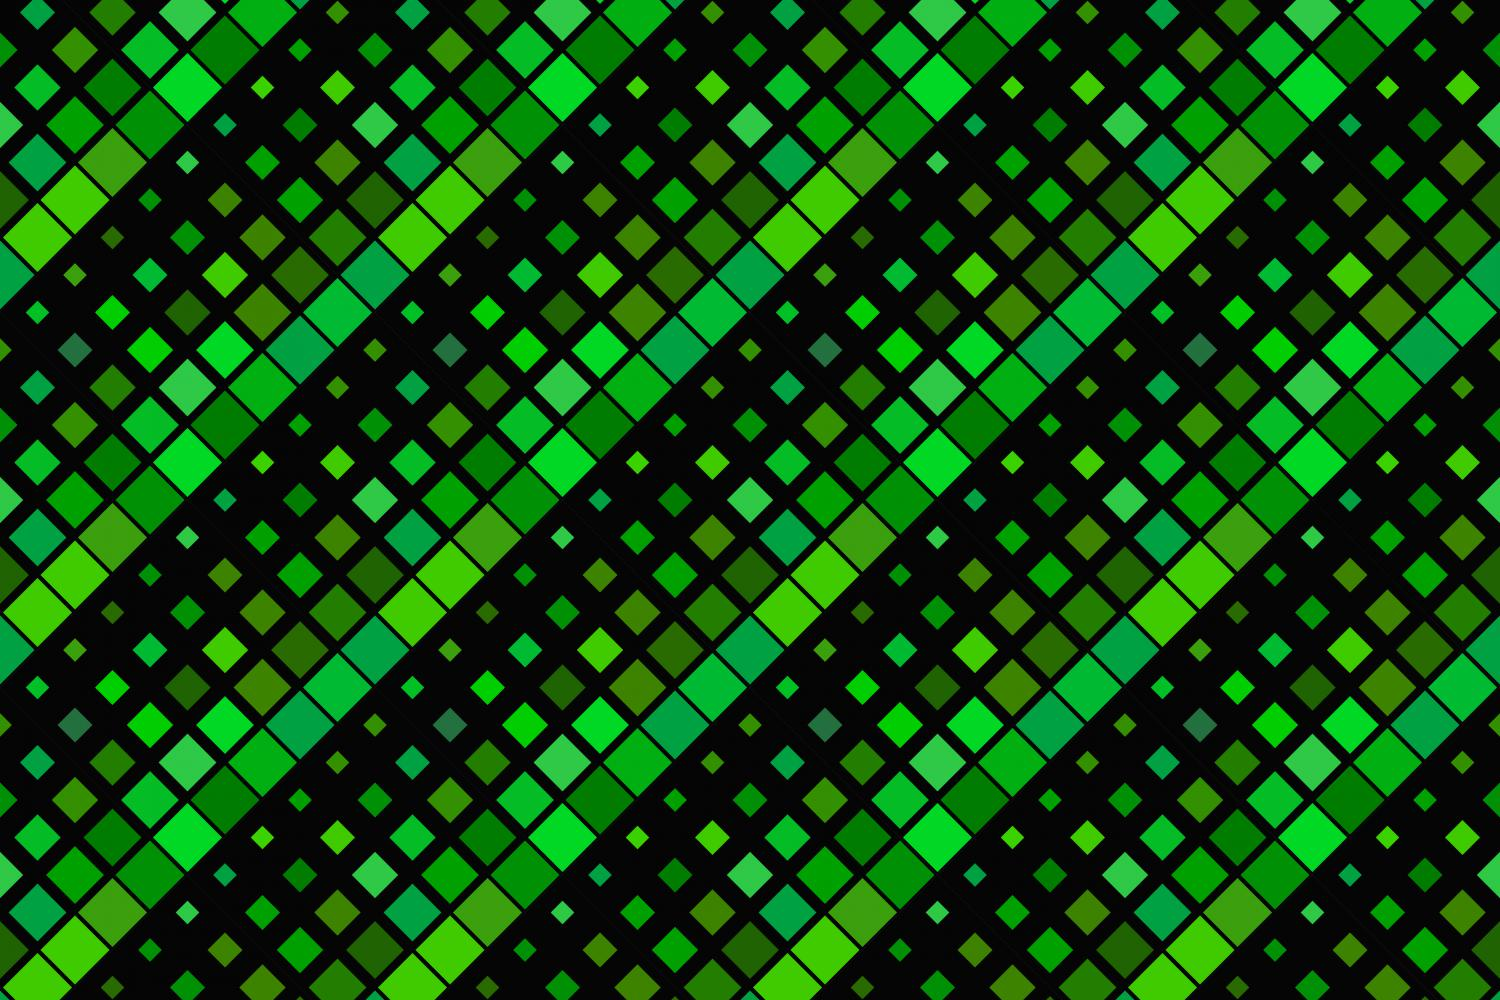 24 Seamless Green Square Patterns example image 10